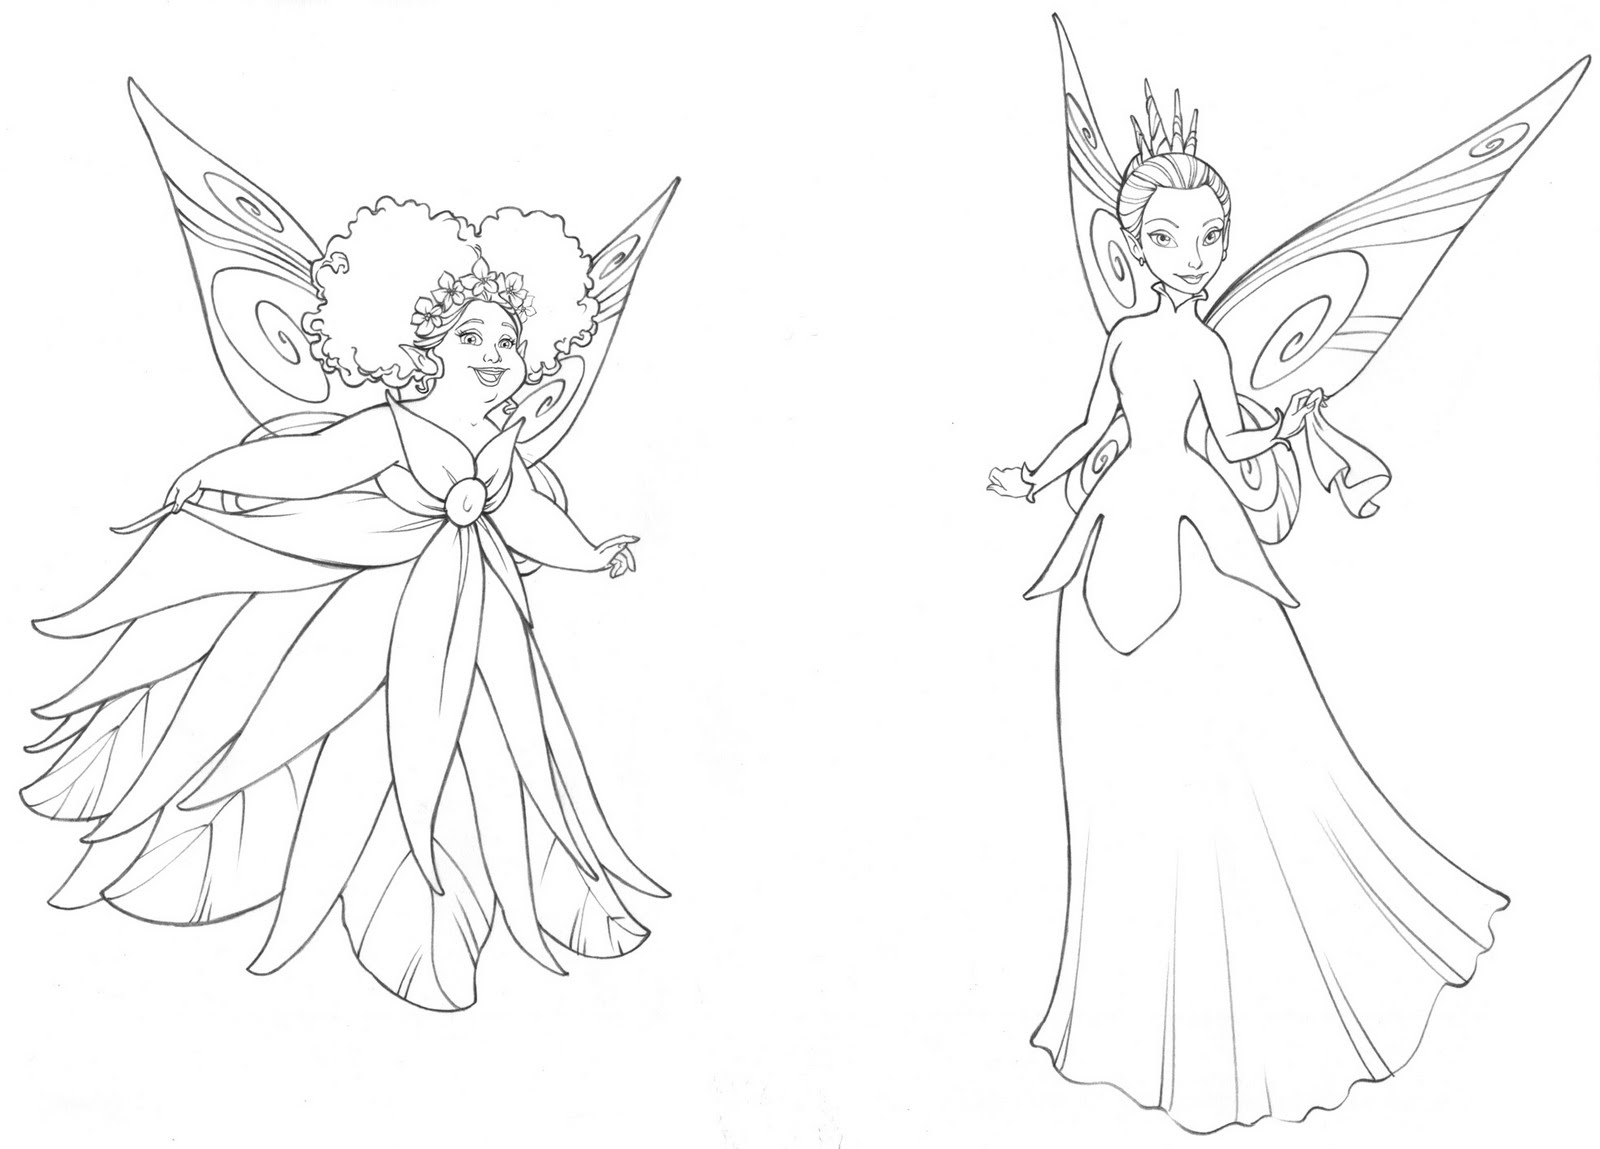 Royalcrownangel blogspot also How Much Does It Cost To Book Djs as well Lego Friends Kolorowanki besides 518336238355661942 furthermore Tinkerbell Coloring Pages 2. on mia house